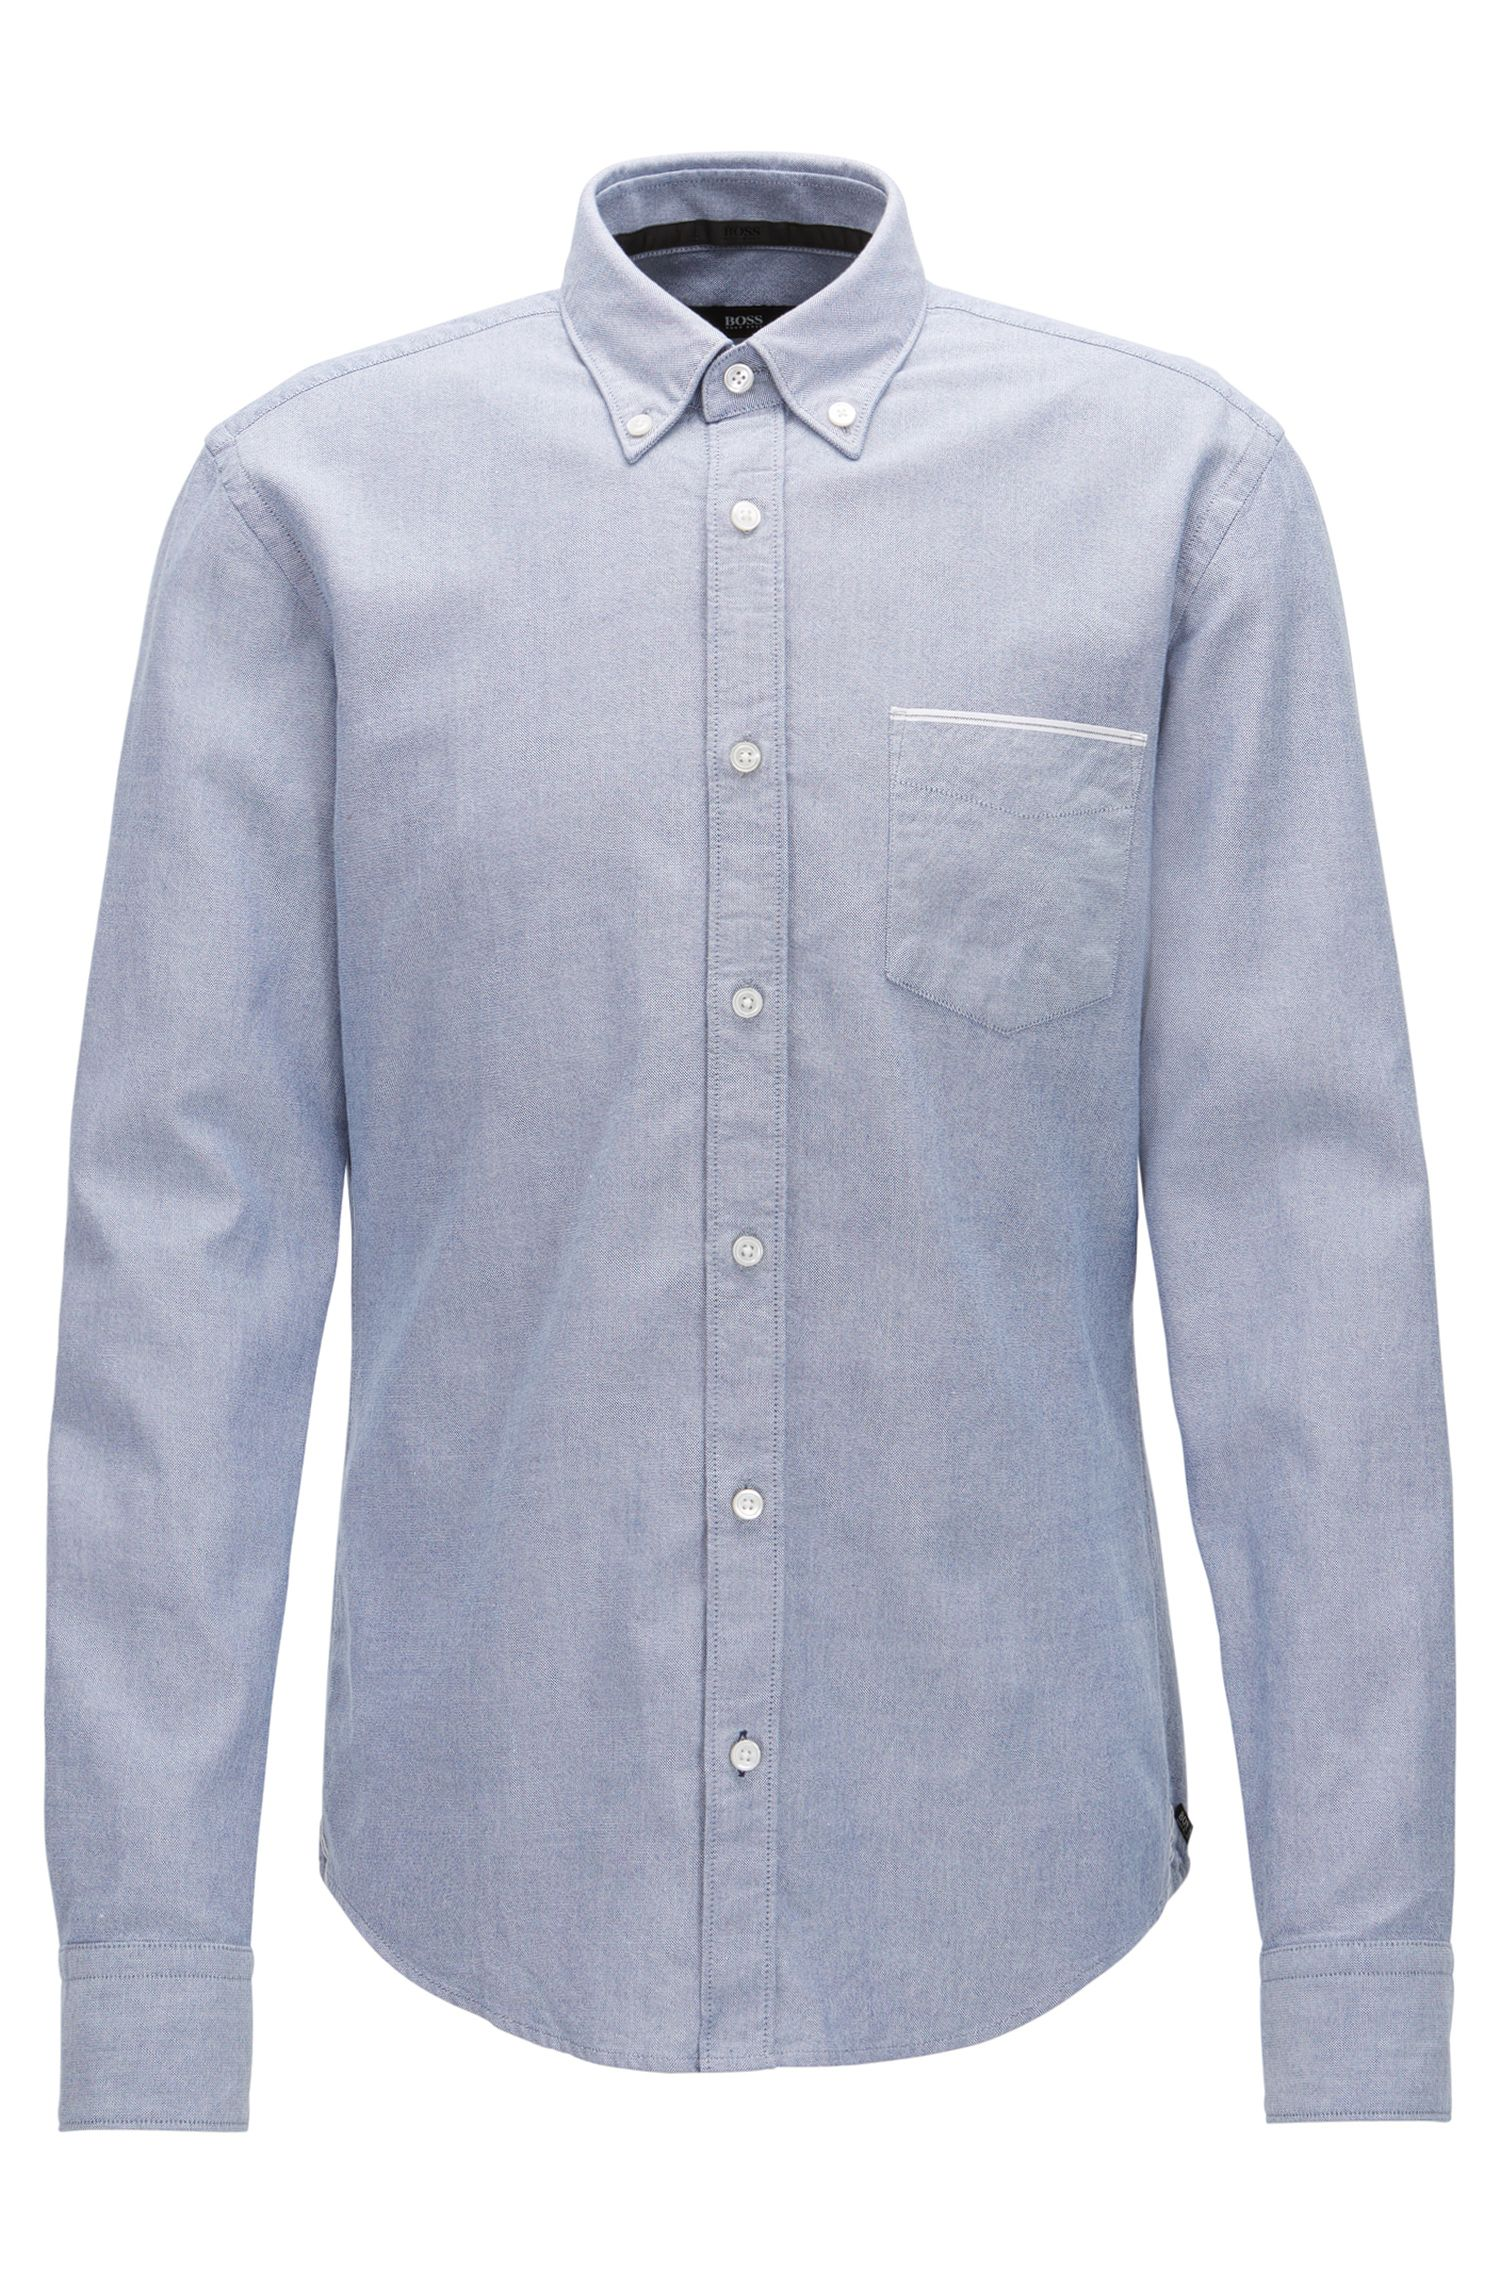 Camisa tipo Oxford slim fit en algodón con orillo